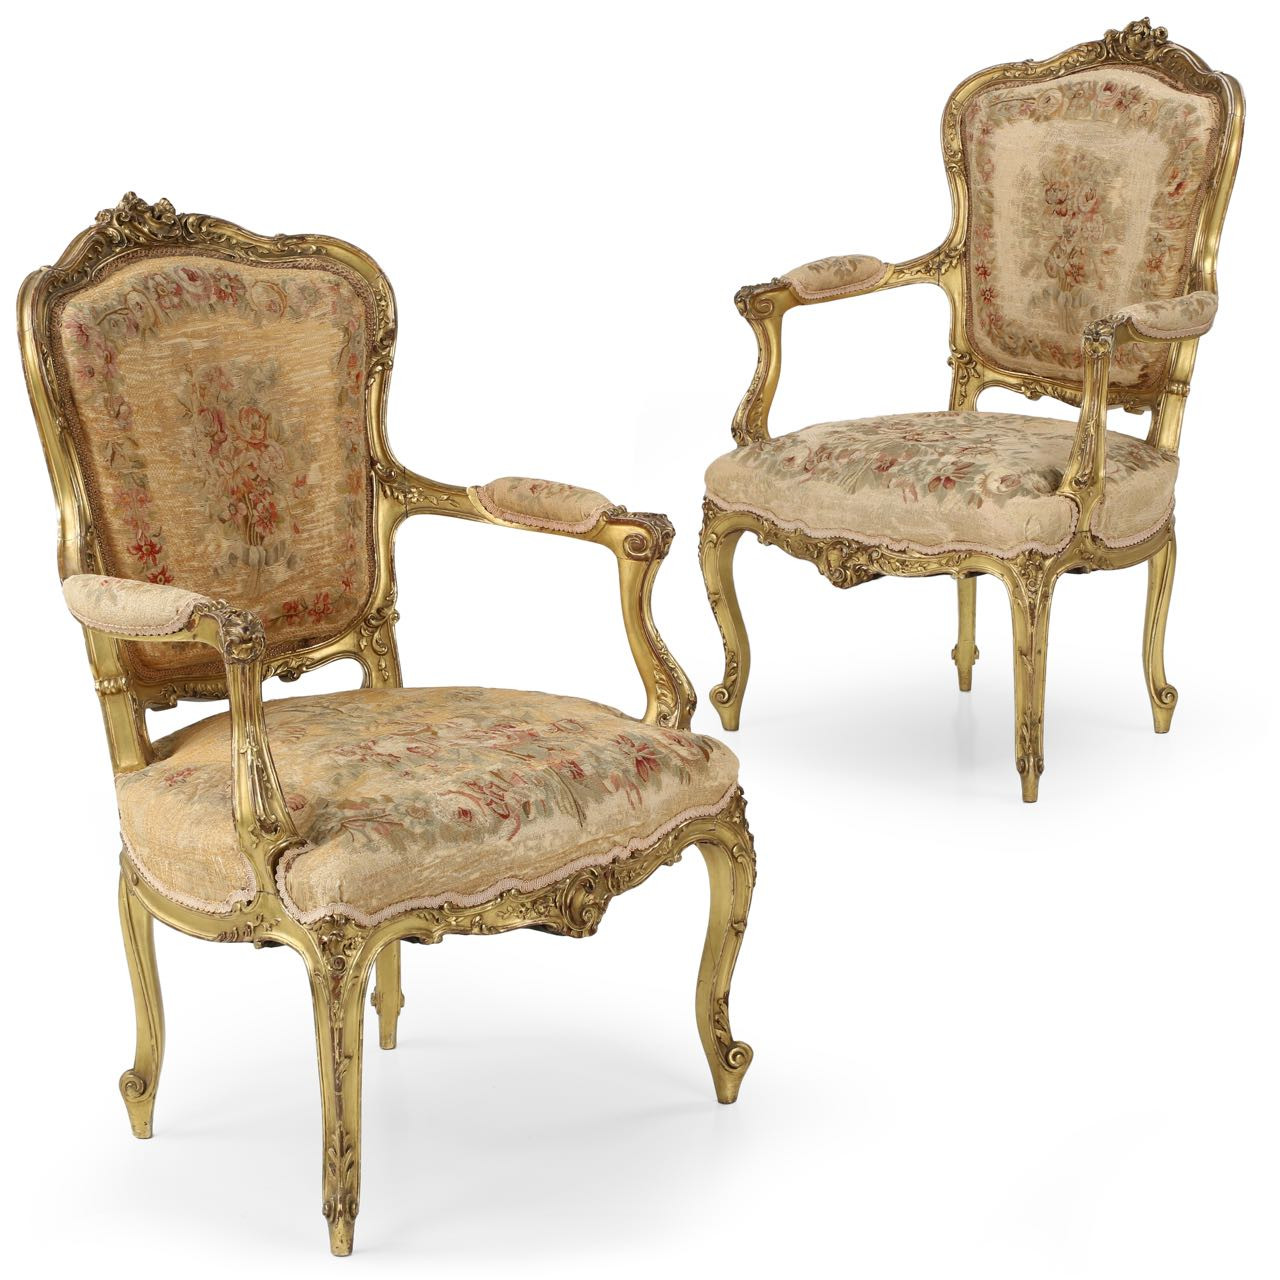 Fauteuils Style Louis Xv Exceptional Pair Of French Louis Xv Style Giltwood Arm Chairs